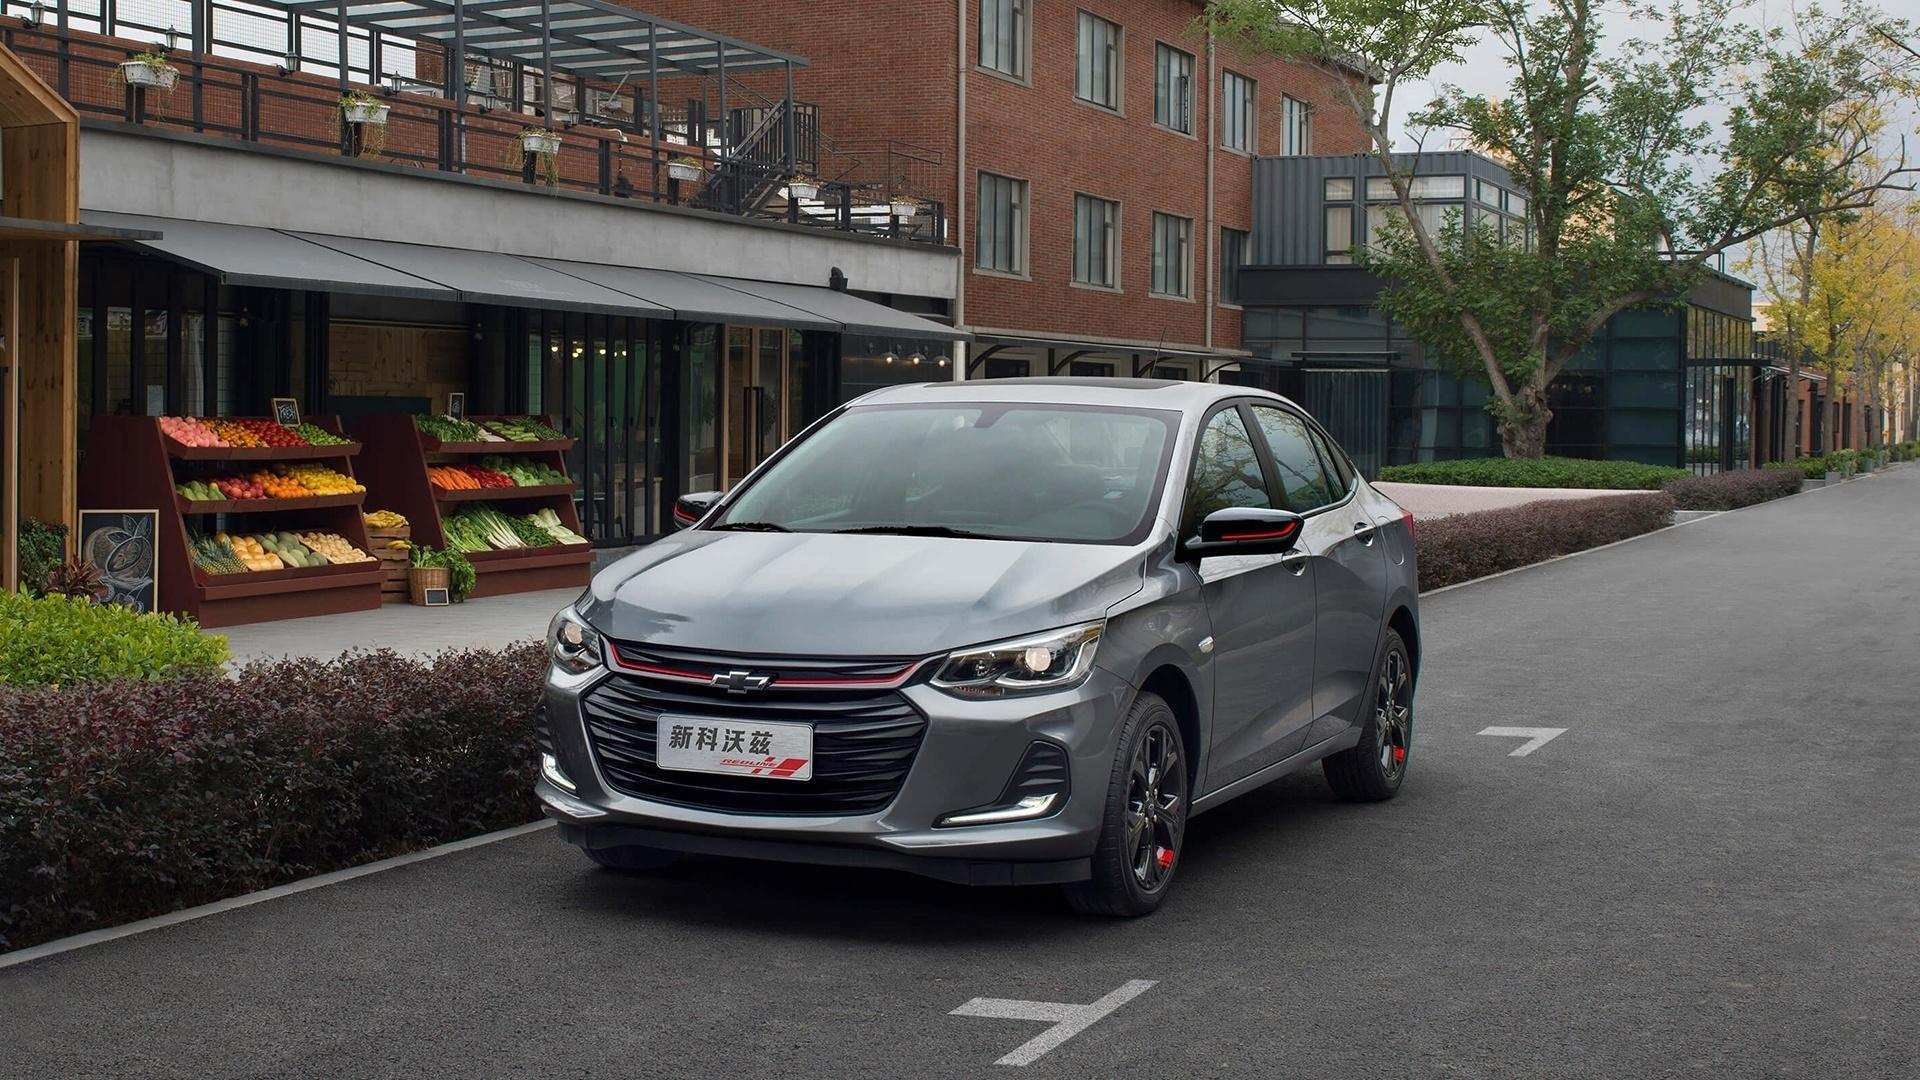 55 A Chevrolet Prisma 2020 China Redesign